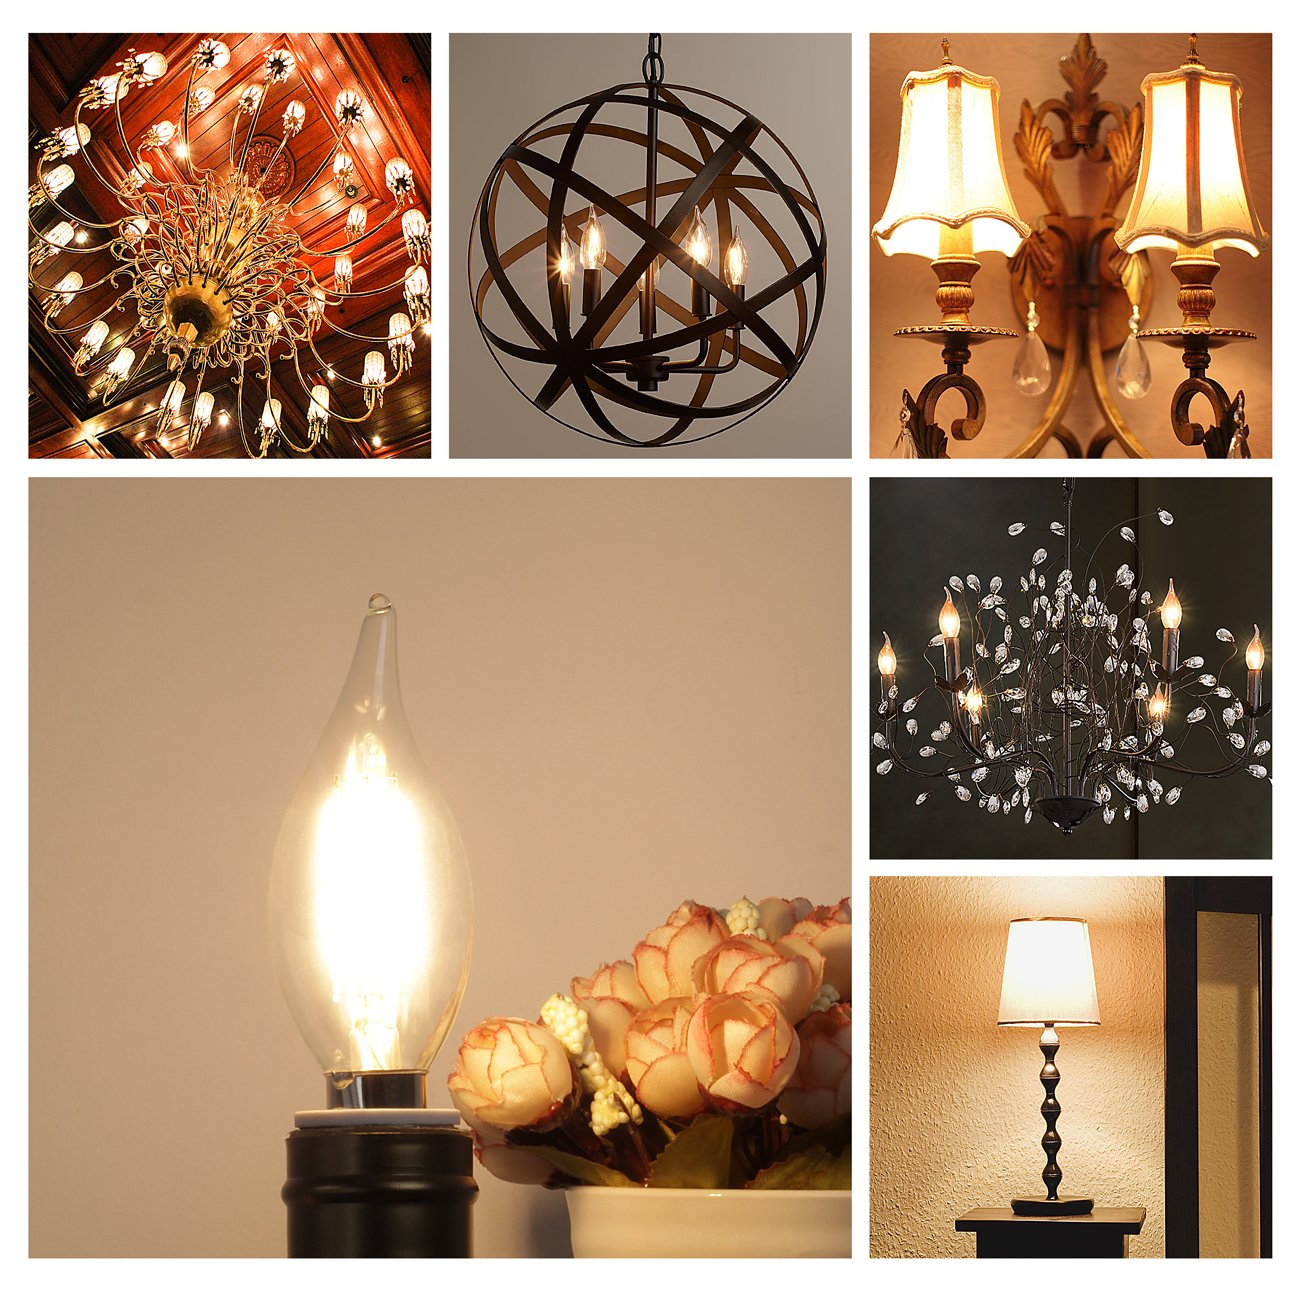 E12 LED Candelabra Bulb 60W Equivalent Dimmable LED Chandelier Light Bulbs 6W 2700K Warm White 550LM CA11 Flame Tip Vintage LED Filament Candle Bulb with Decorative Candelabra Base, 6 Packs, by Boncoo by Boncoo (Image #7)